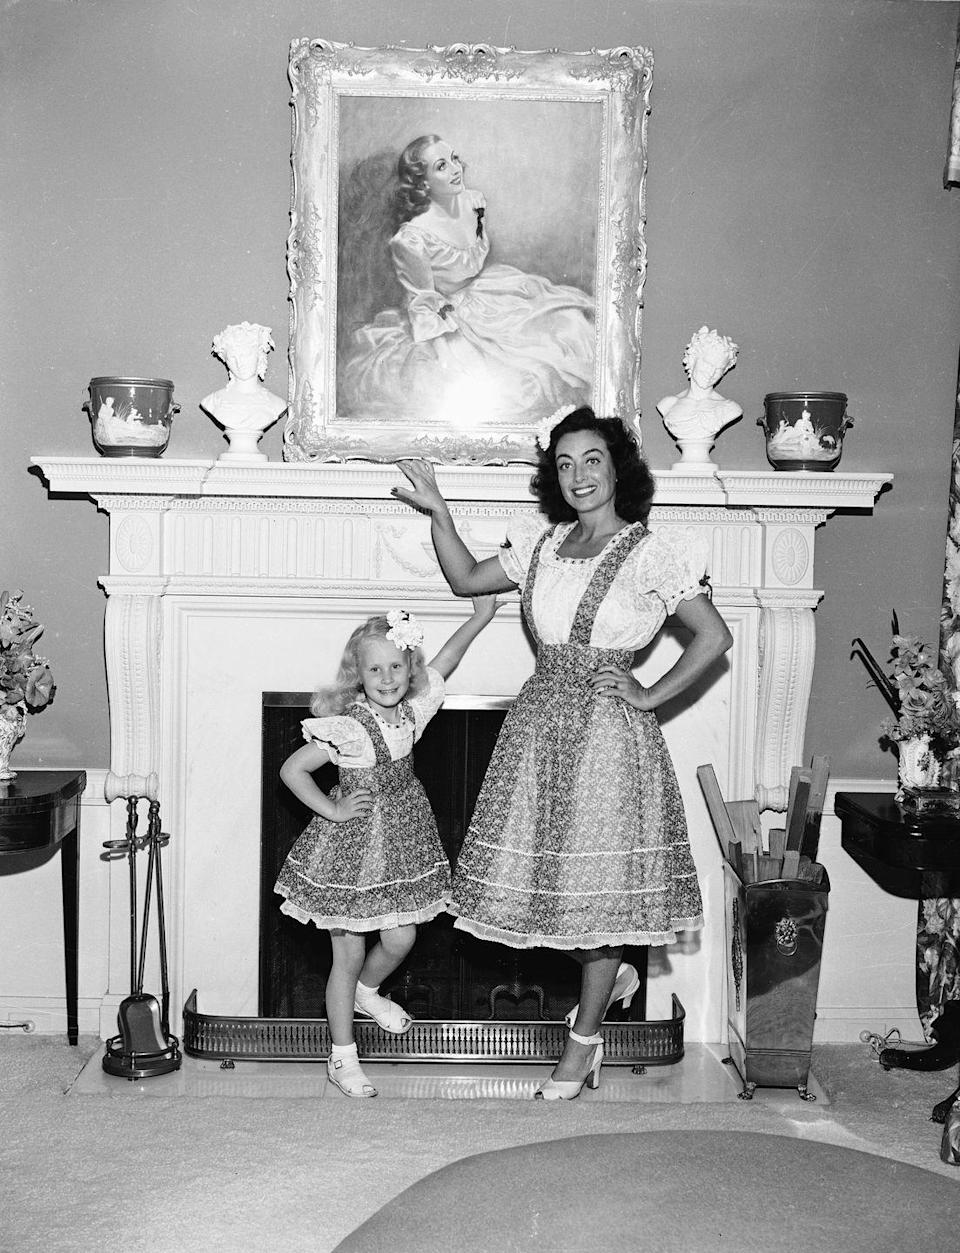 <p>Joan and Philip welcomed another adopted child together in 1943, a son named Christopher. </p>